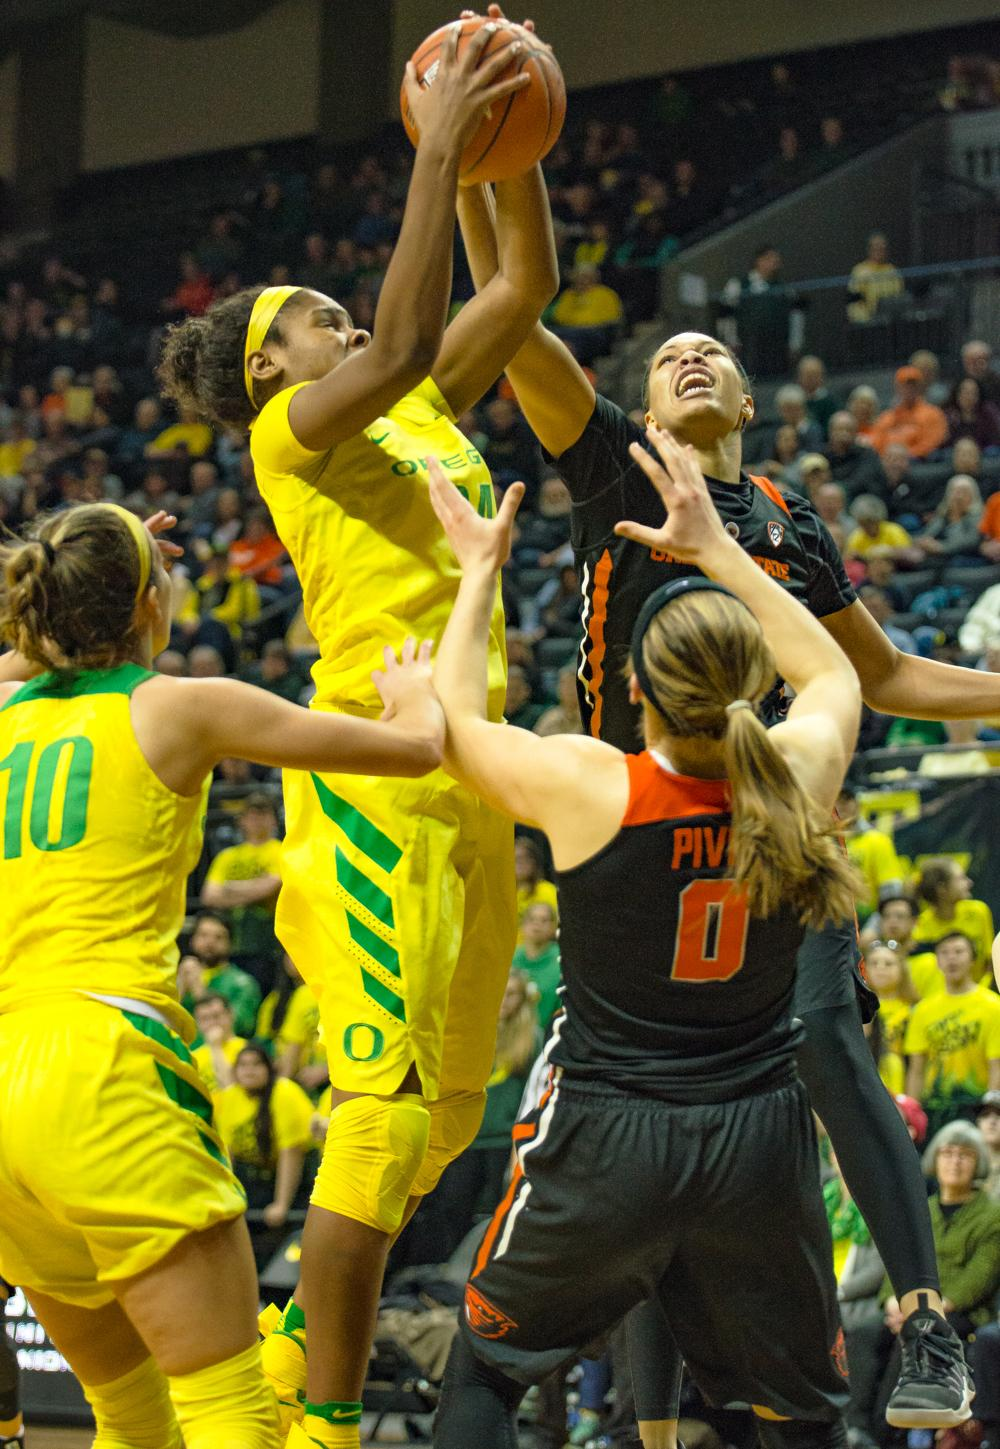 Oregon Ducks Forward Ruthy Hebard (#24) fights for the rebound with Oregon State Forward Breanna Brown (#4). Oregon Ducks lost 40-43 to Oregon State Beavers in a tightly matched fourth quarter. Photo by Jonathan Booker, Oregon News Lab